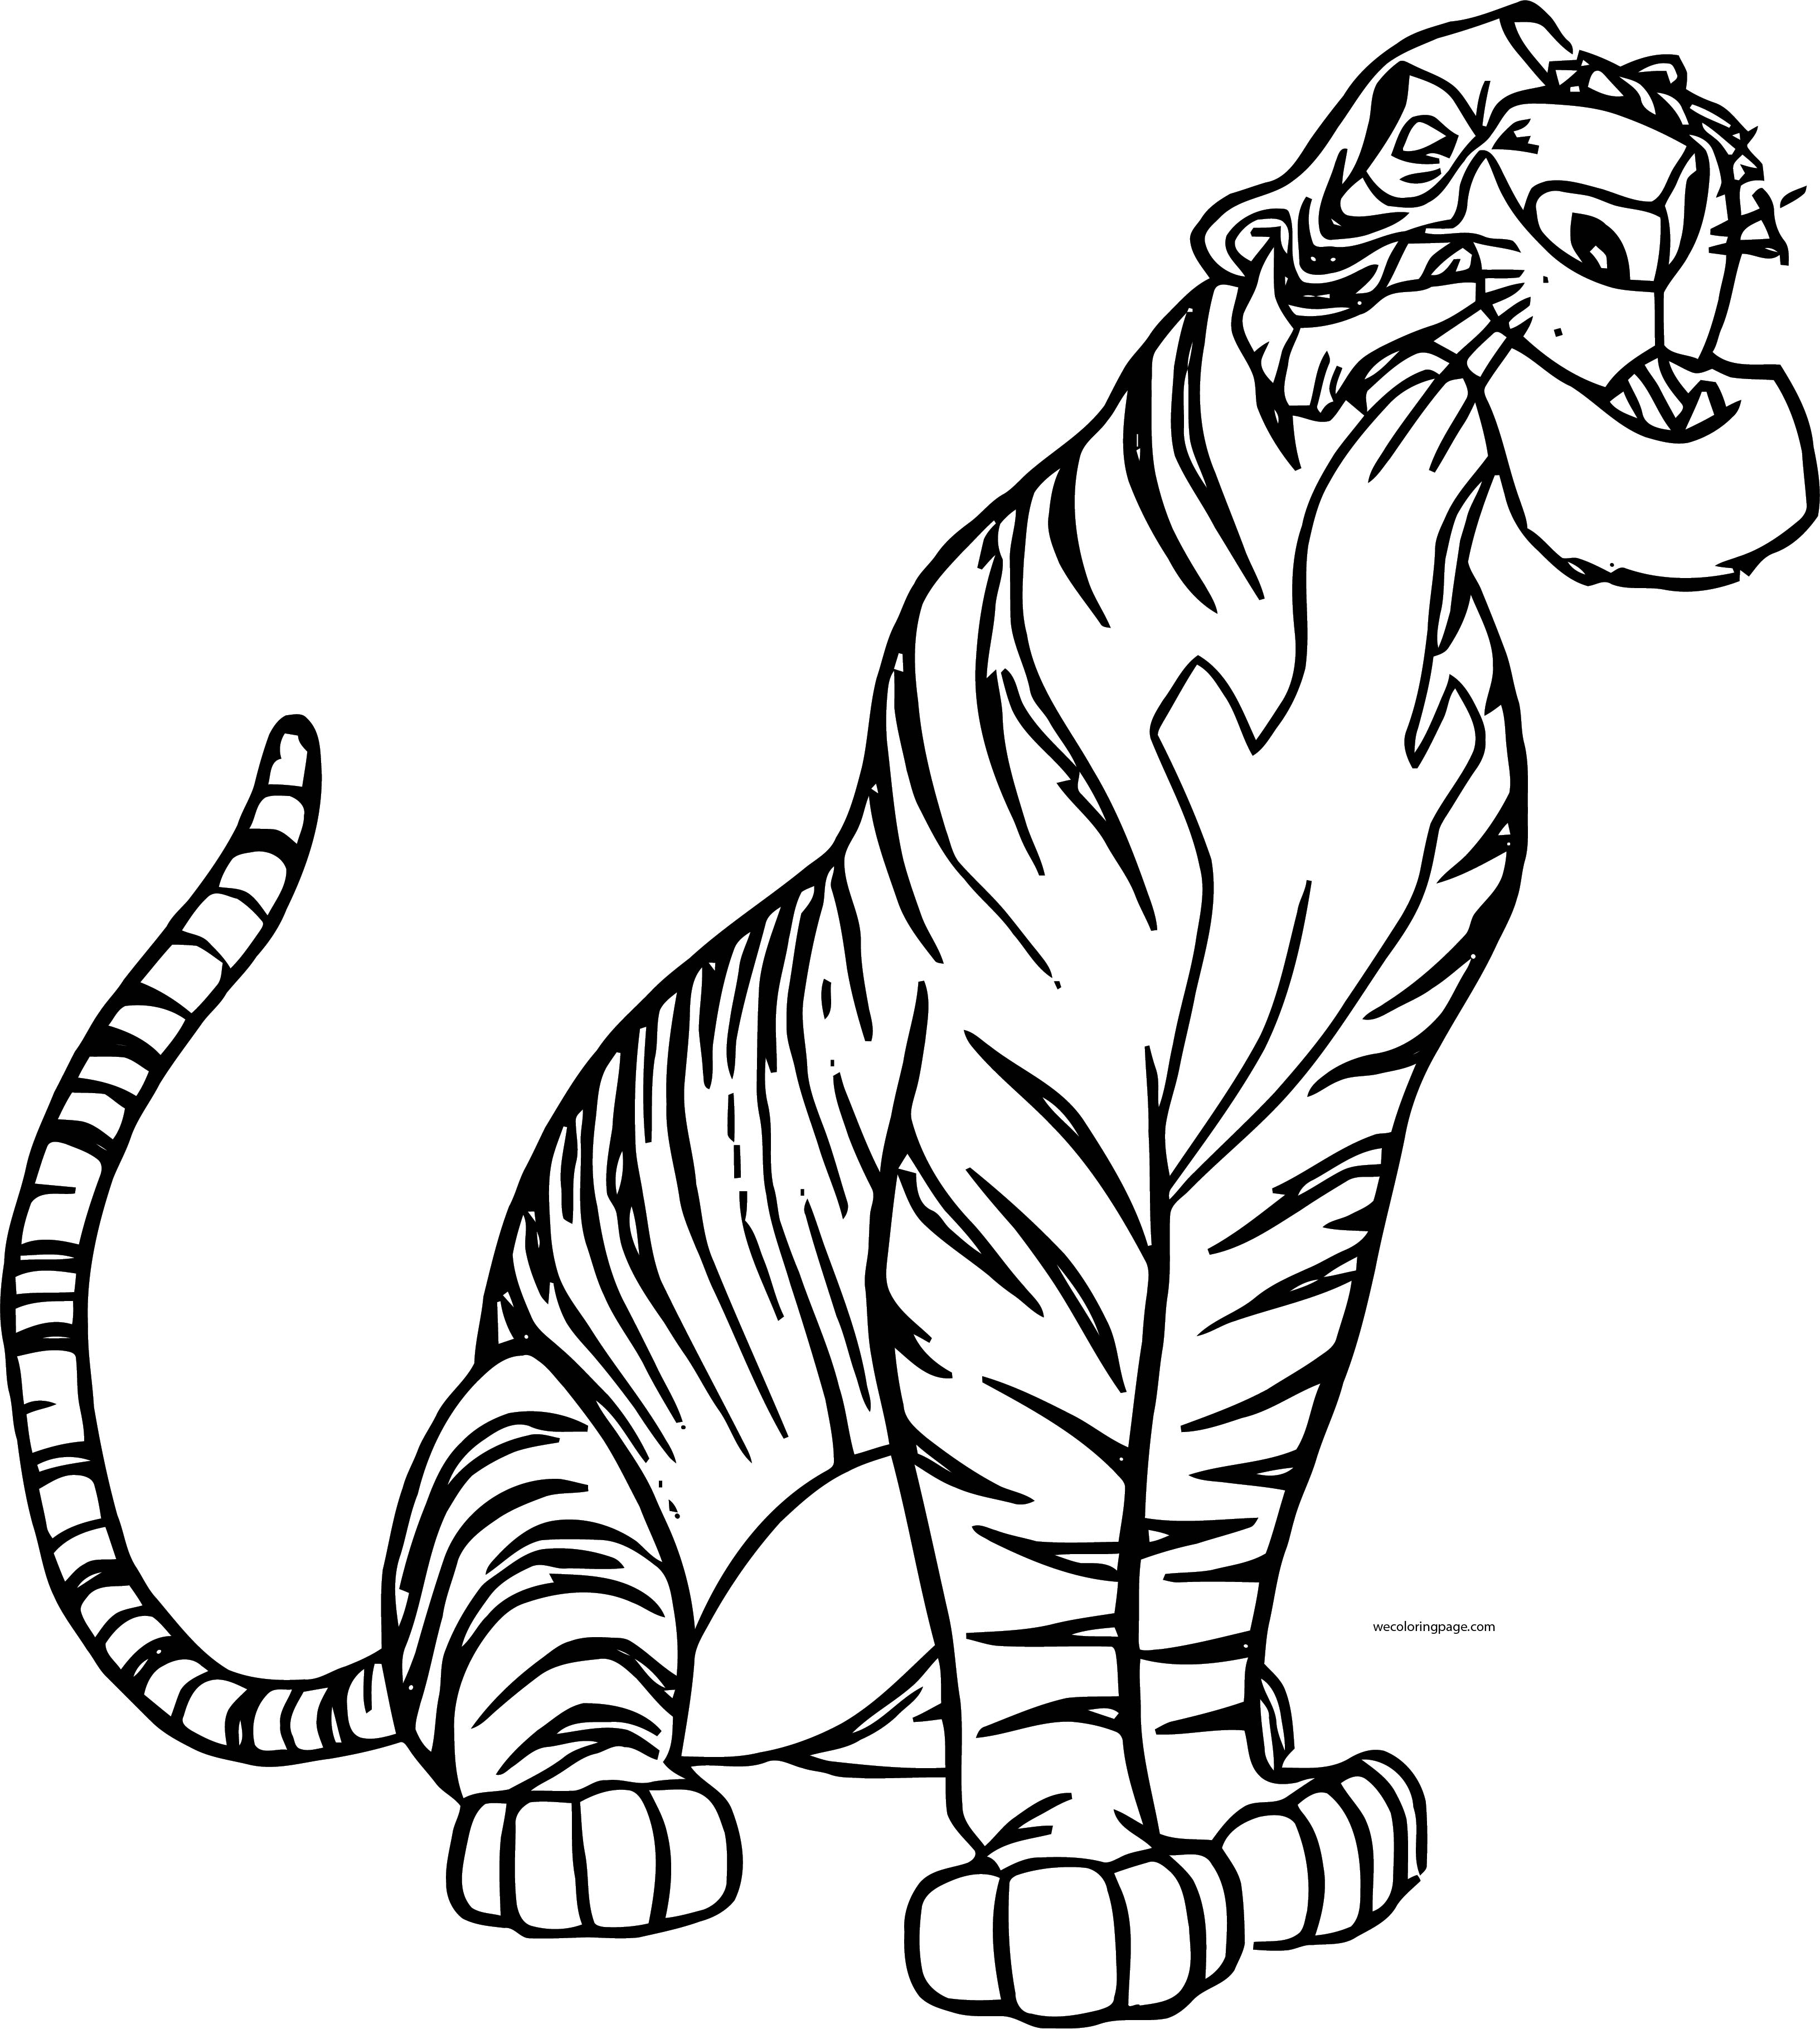 Disney Jungle Book Coloring Book | Jungle Junction Coloring Pages ...